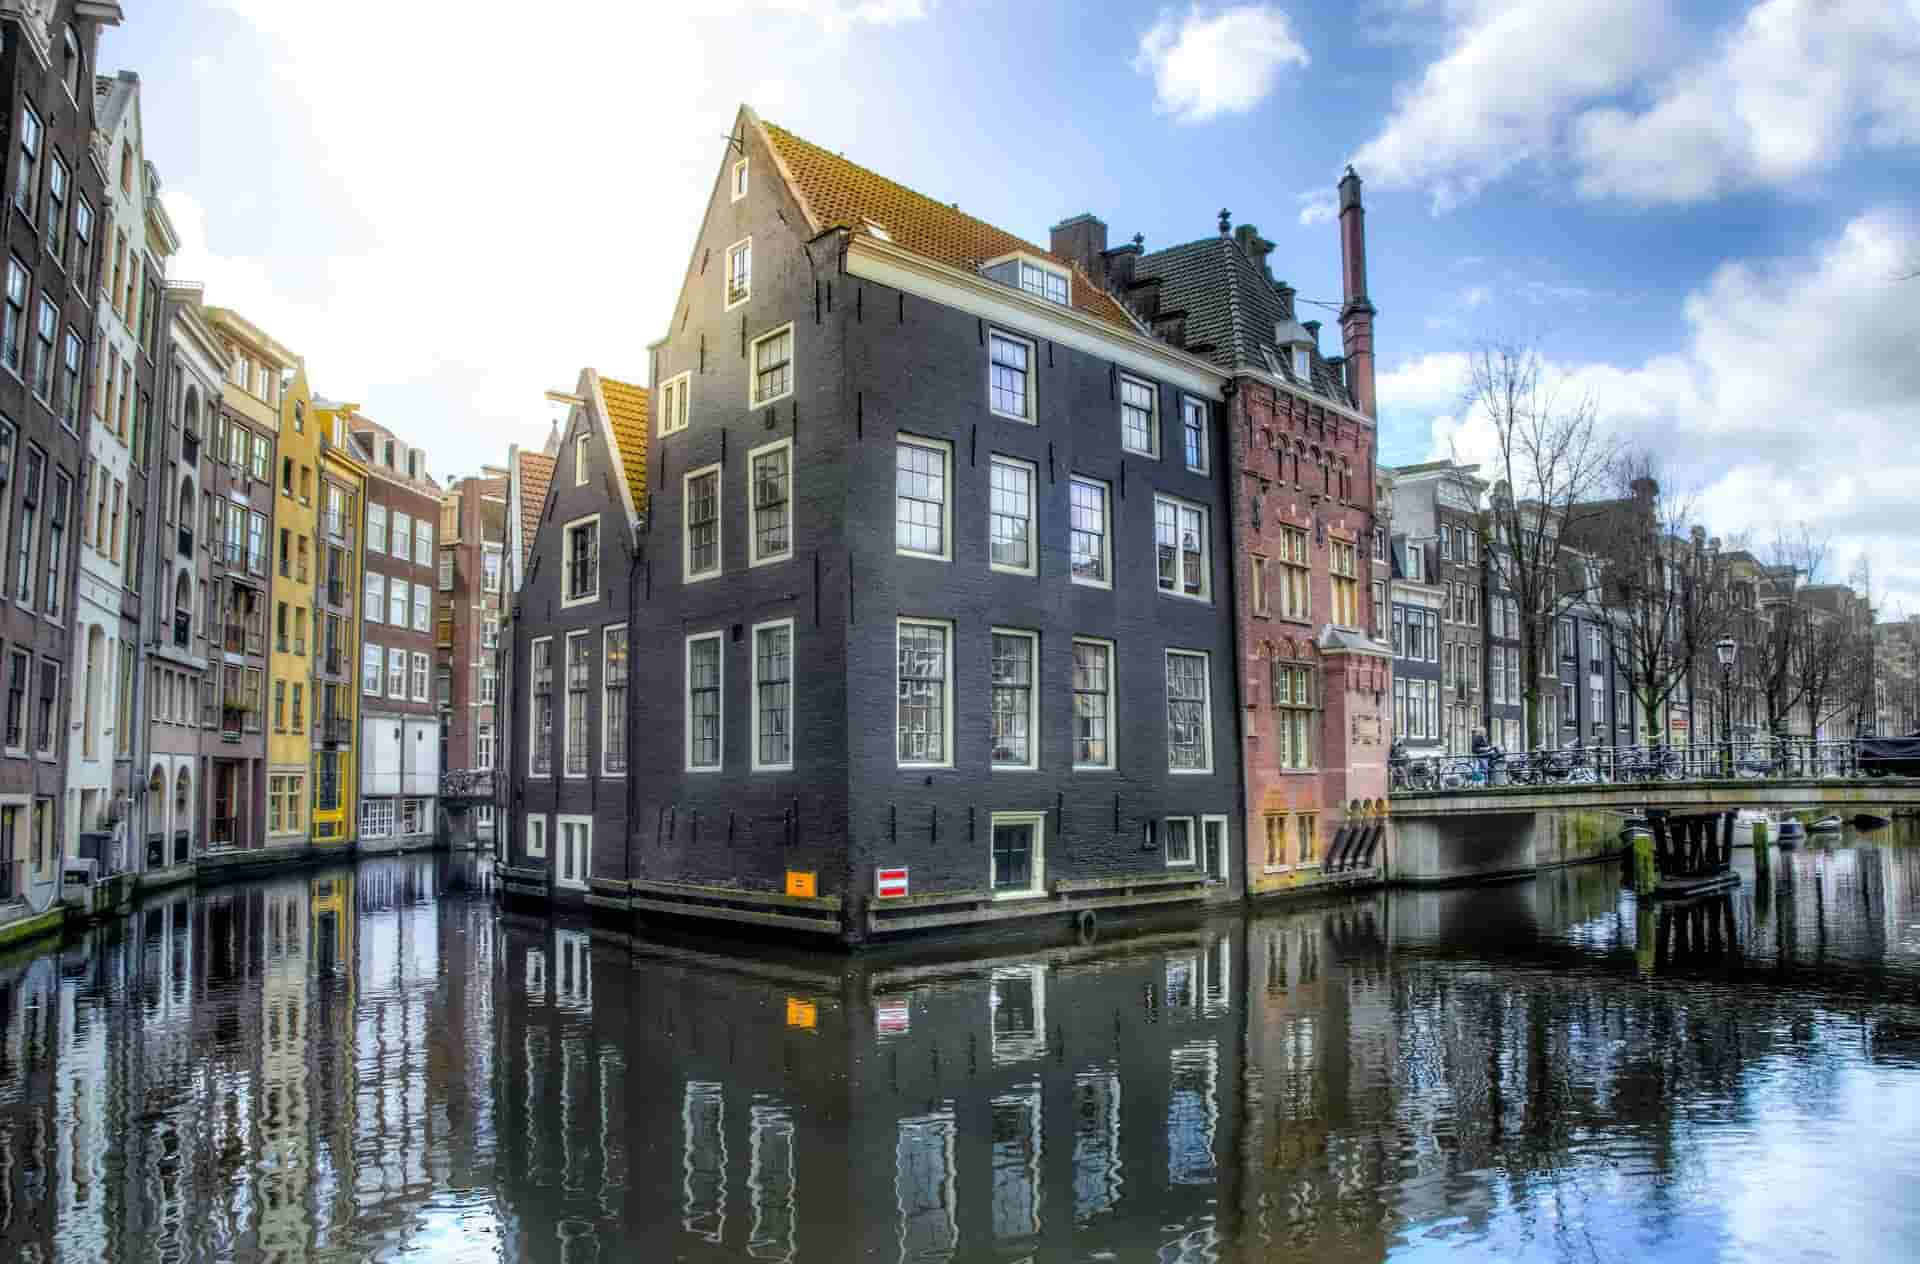 How to Avoid Crowds in Amsterdam in 2019